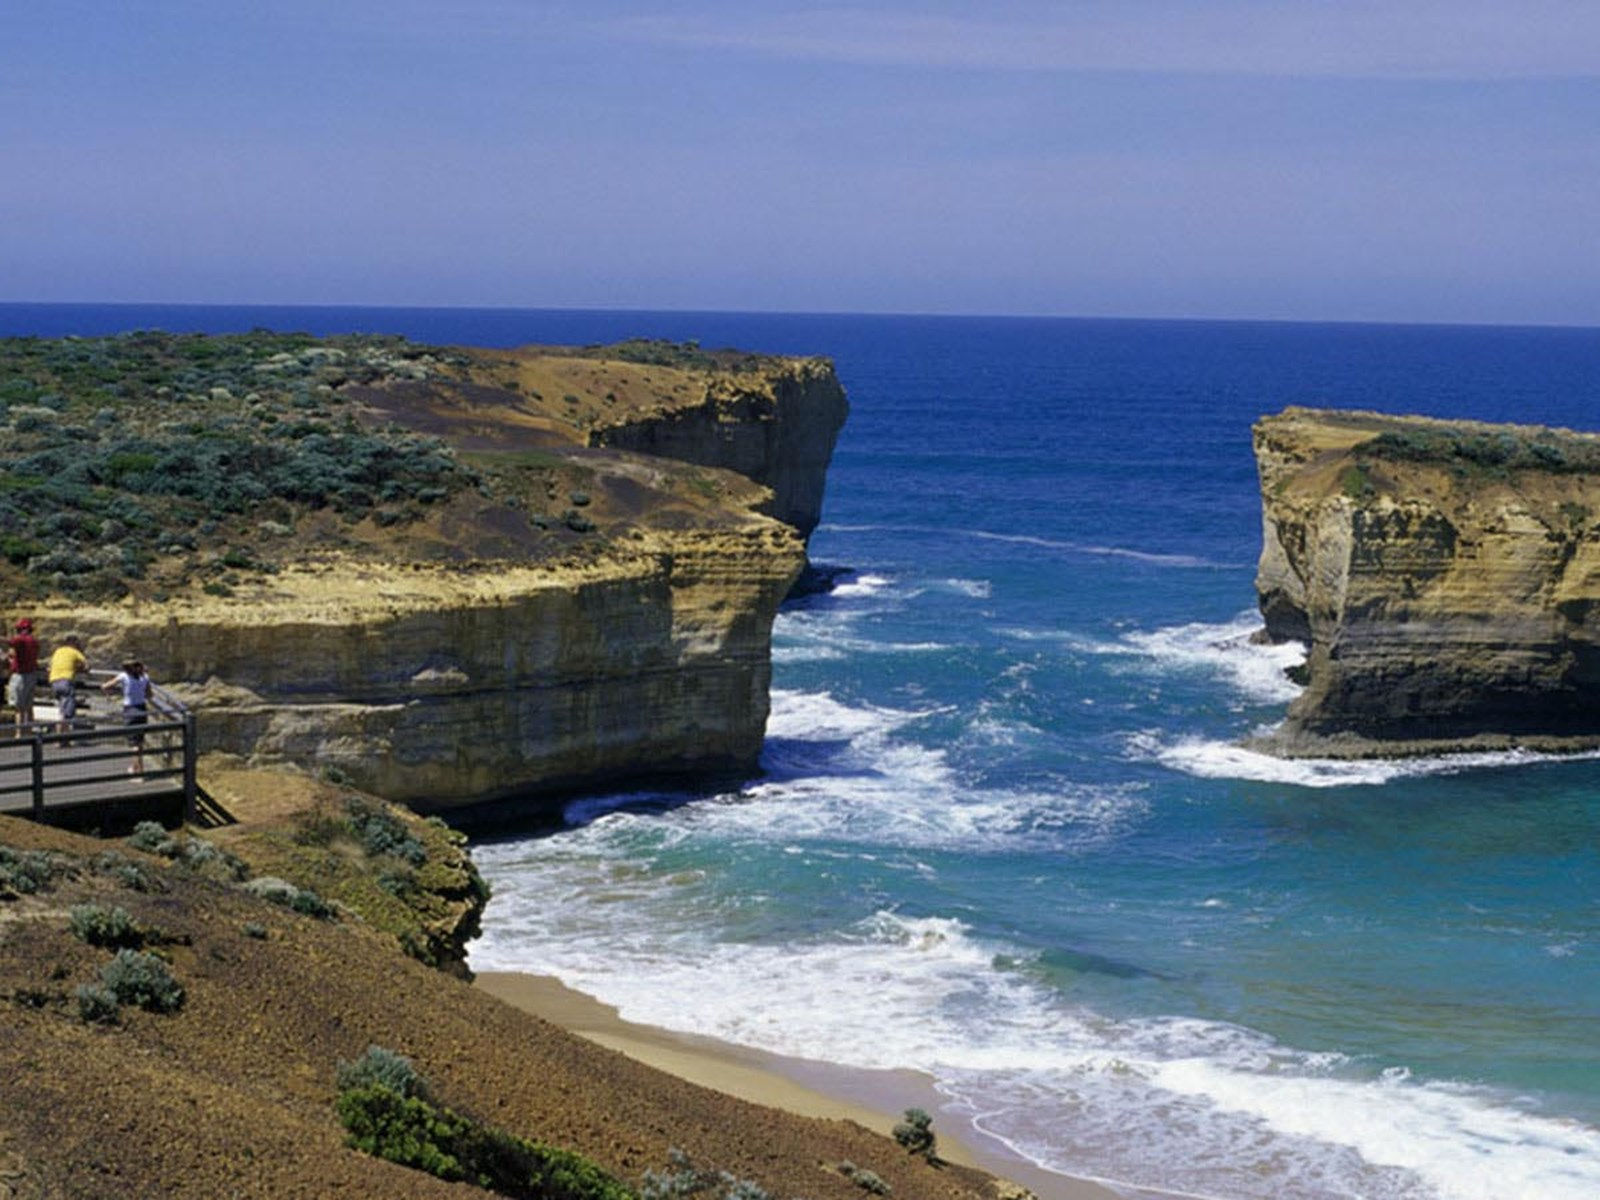 London Bridge, Great Ocean Road, Victoria, Australia